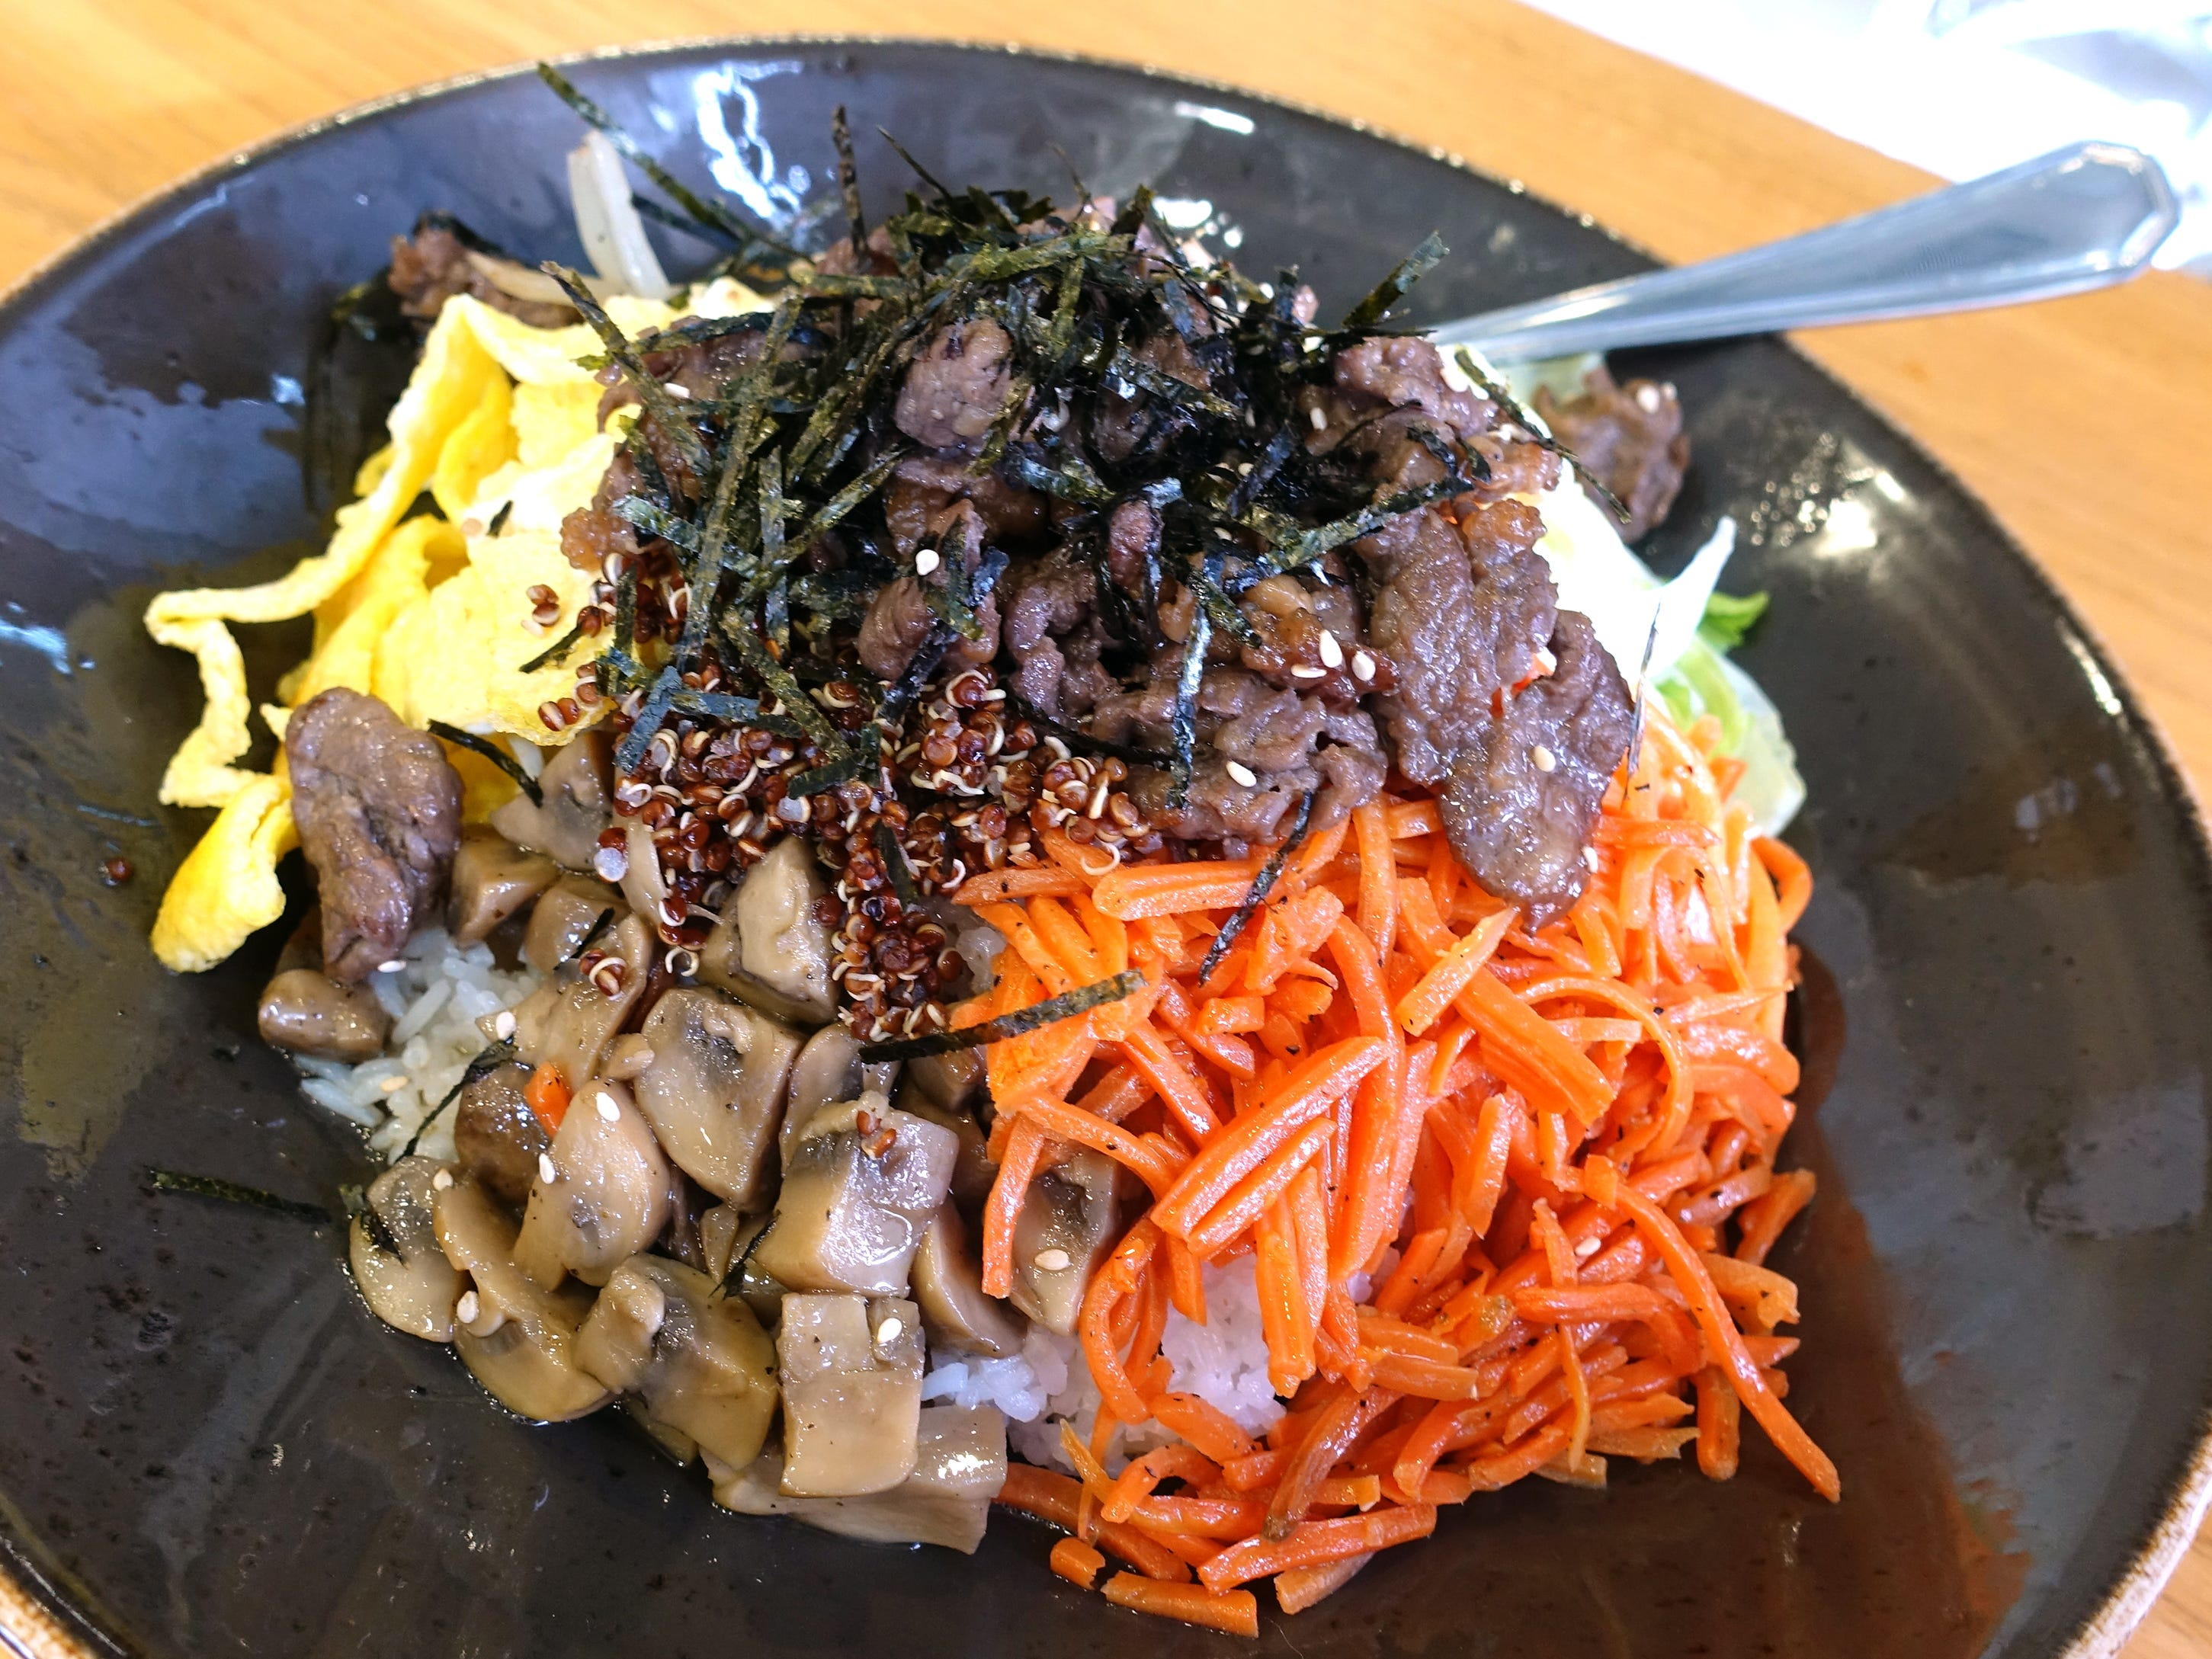 Bulgogi bibimbap at Bonchon in Tempe.